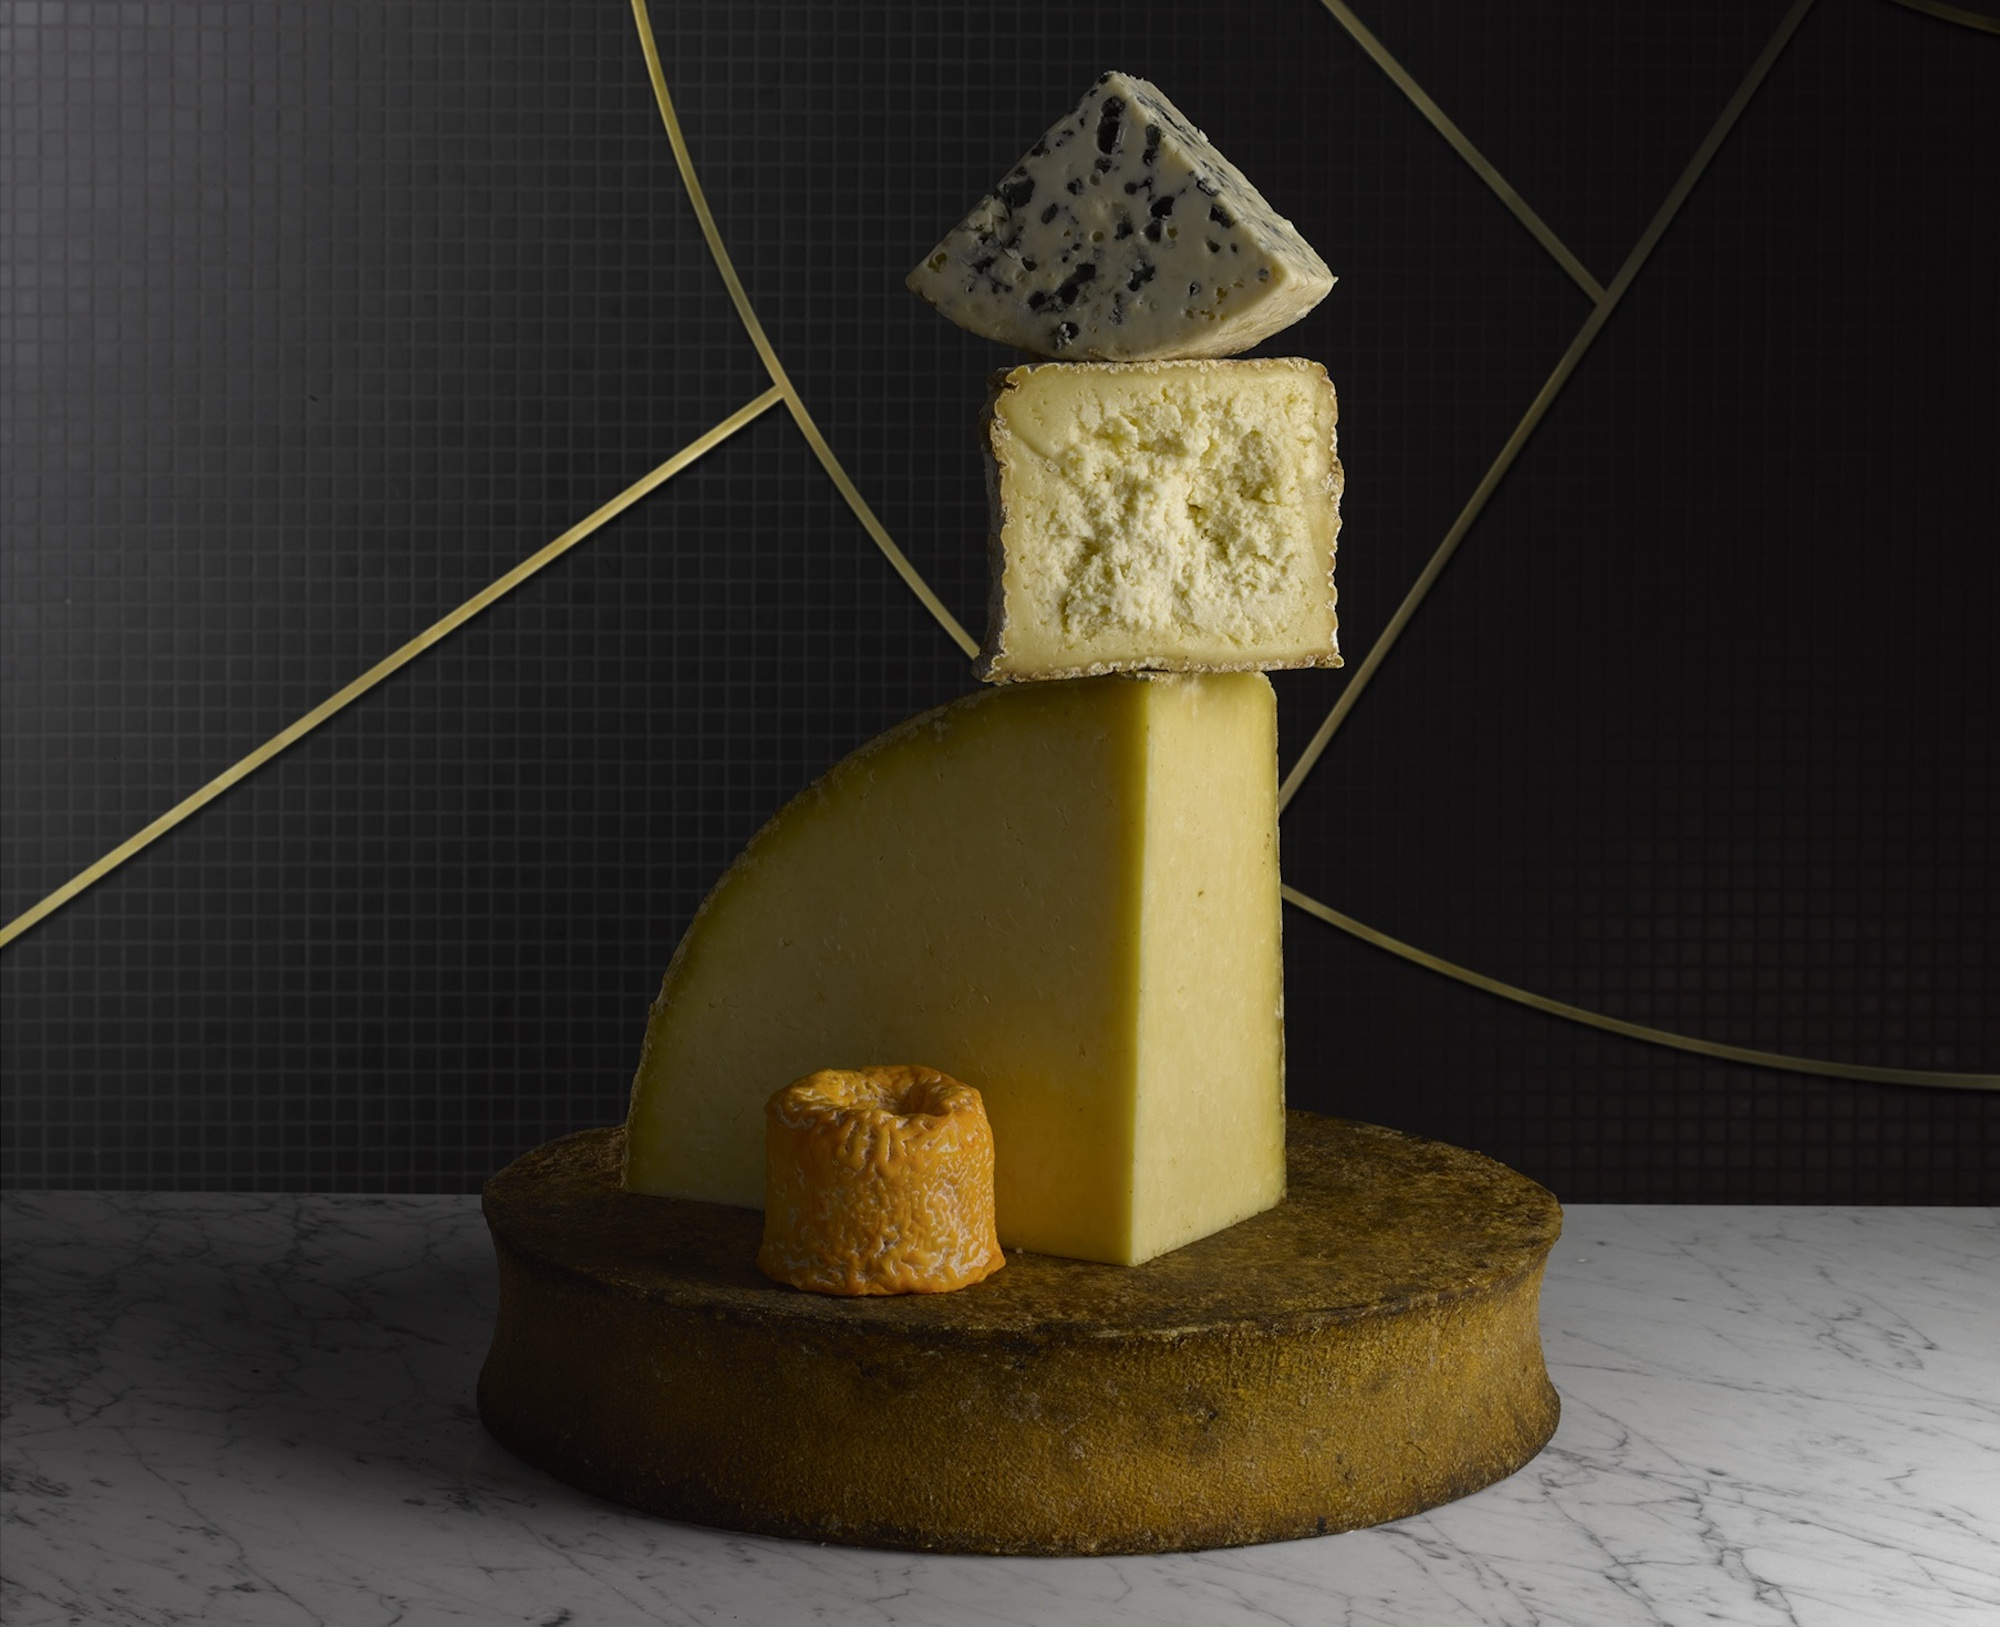 Foodie destination, Printemps du Gout in Paris sells a variety of artisanal French cheese.